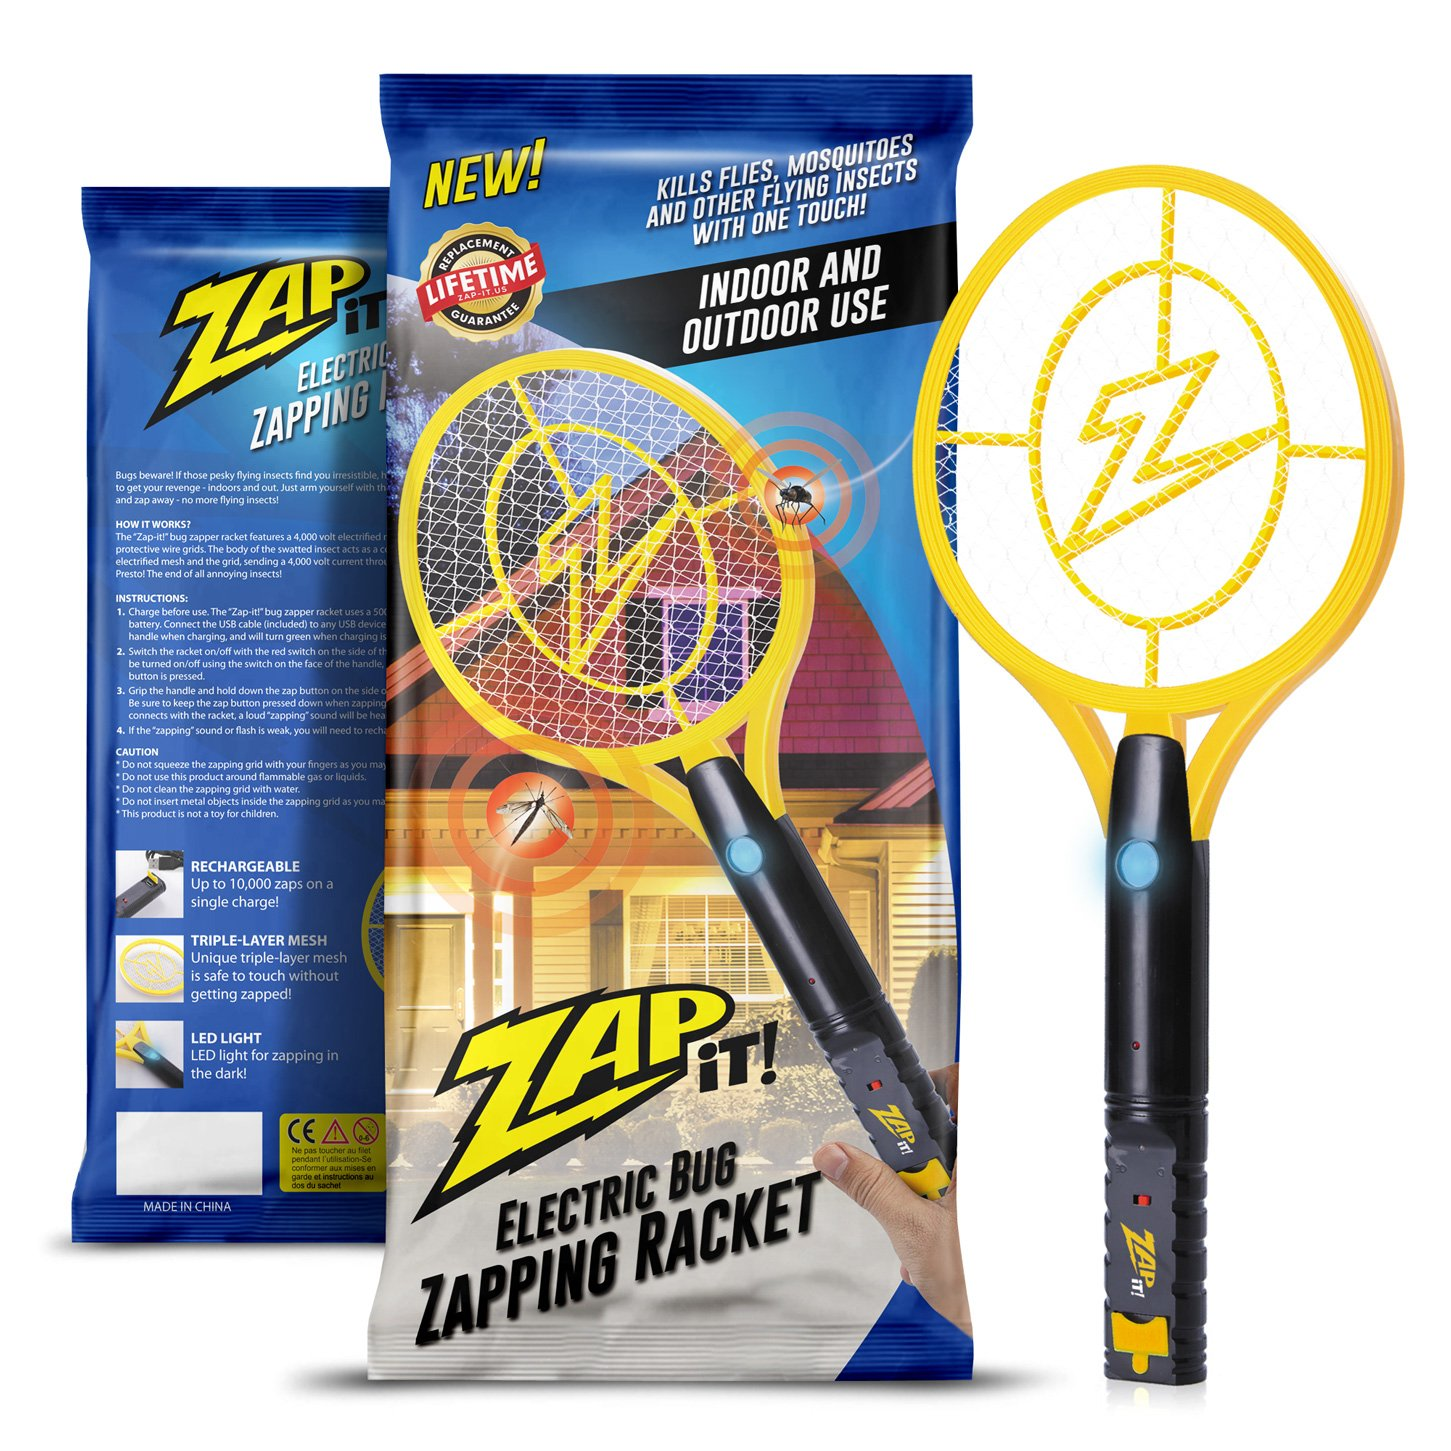 ZAP IT! Bug Zapper - Rechargeable Mosquito, Fly Killer and Bug Zapper Racket - 4,000 Volt - USB Charging, Super-Bright LED Light to Zap in The Dark - Safe to Touch (Large)